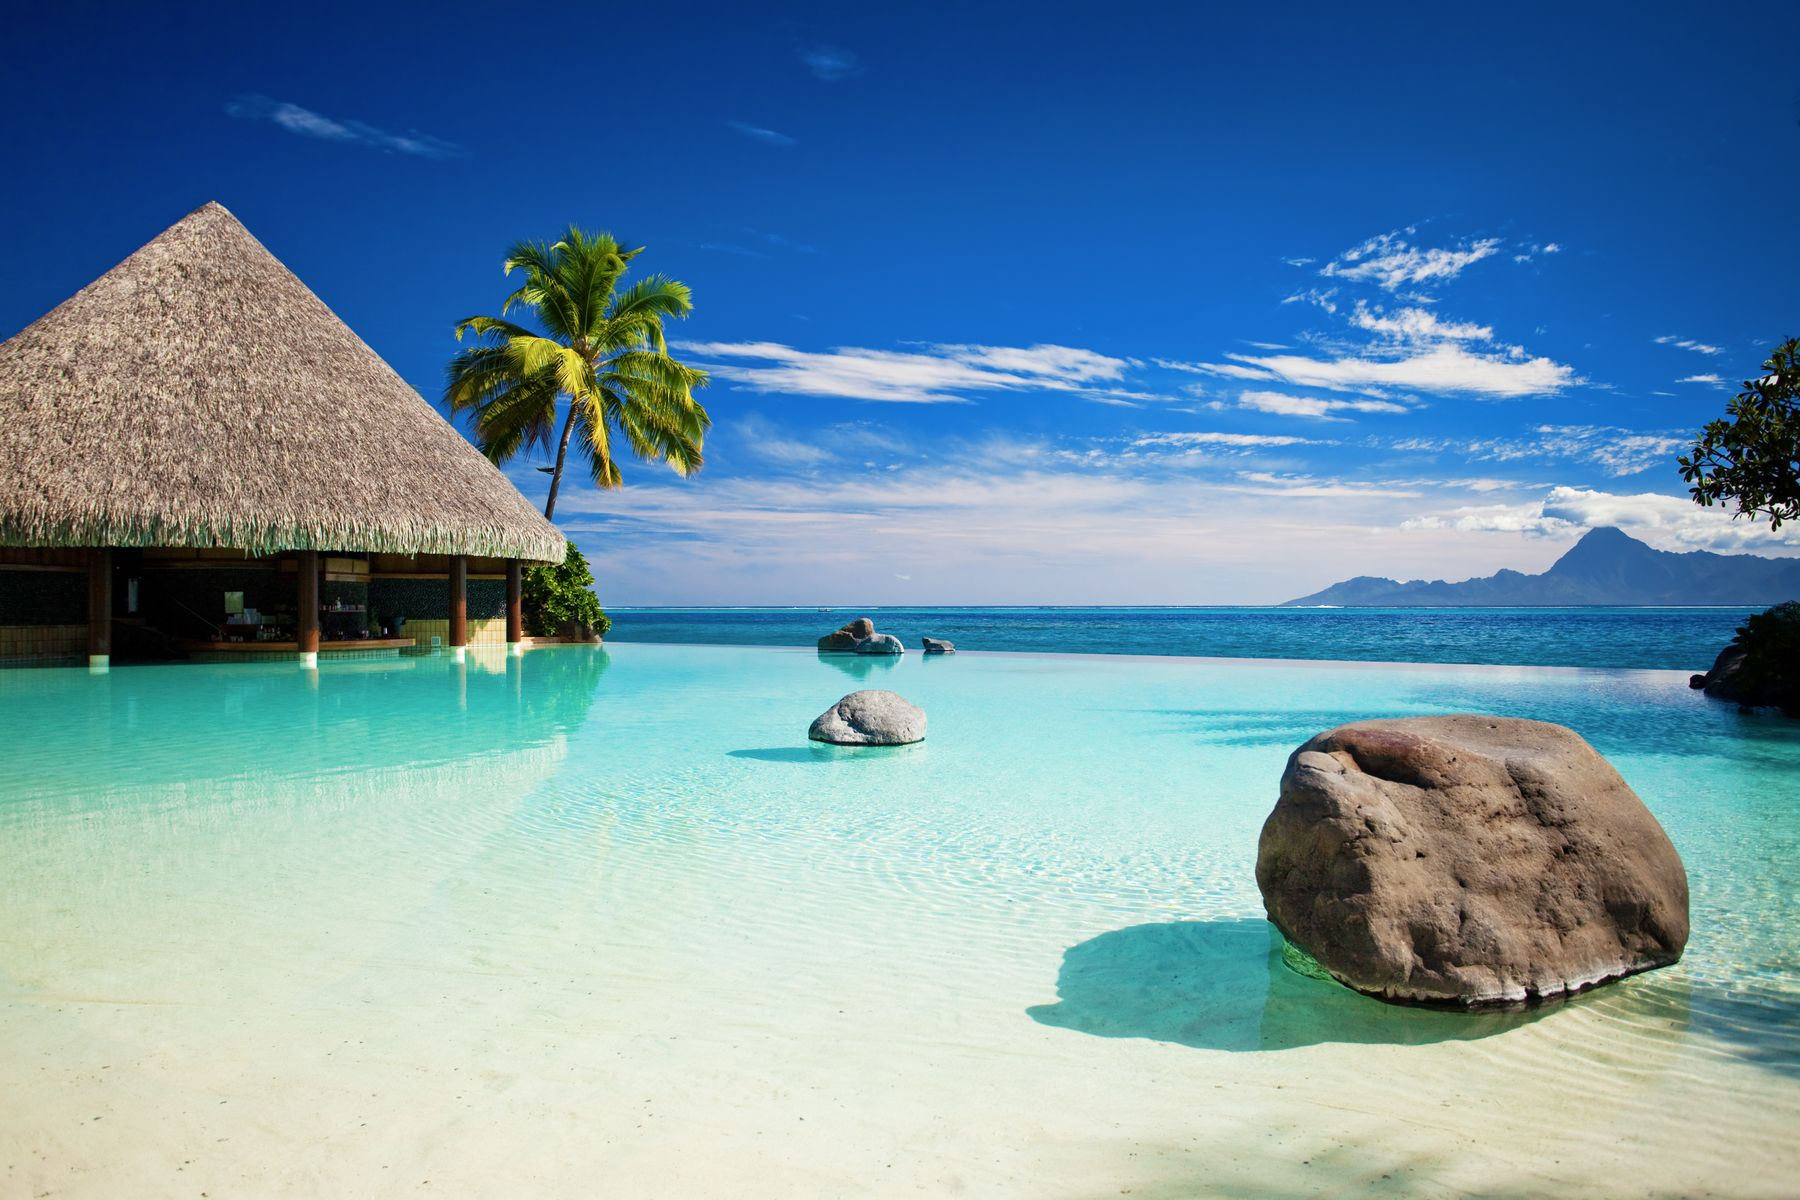 Overwater bungalow and turquoise seas in Tahiti, French Polynesia